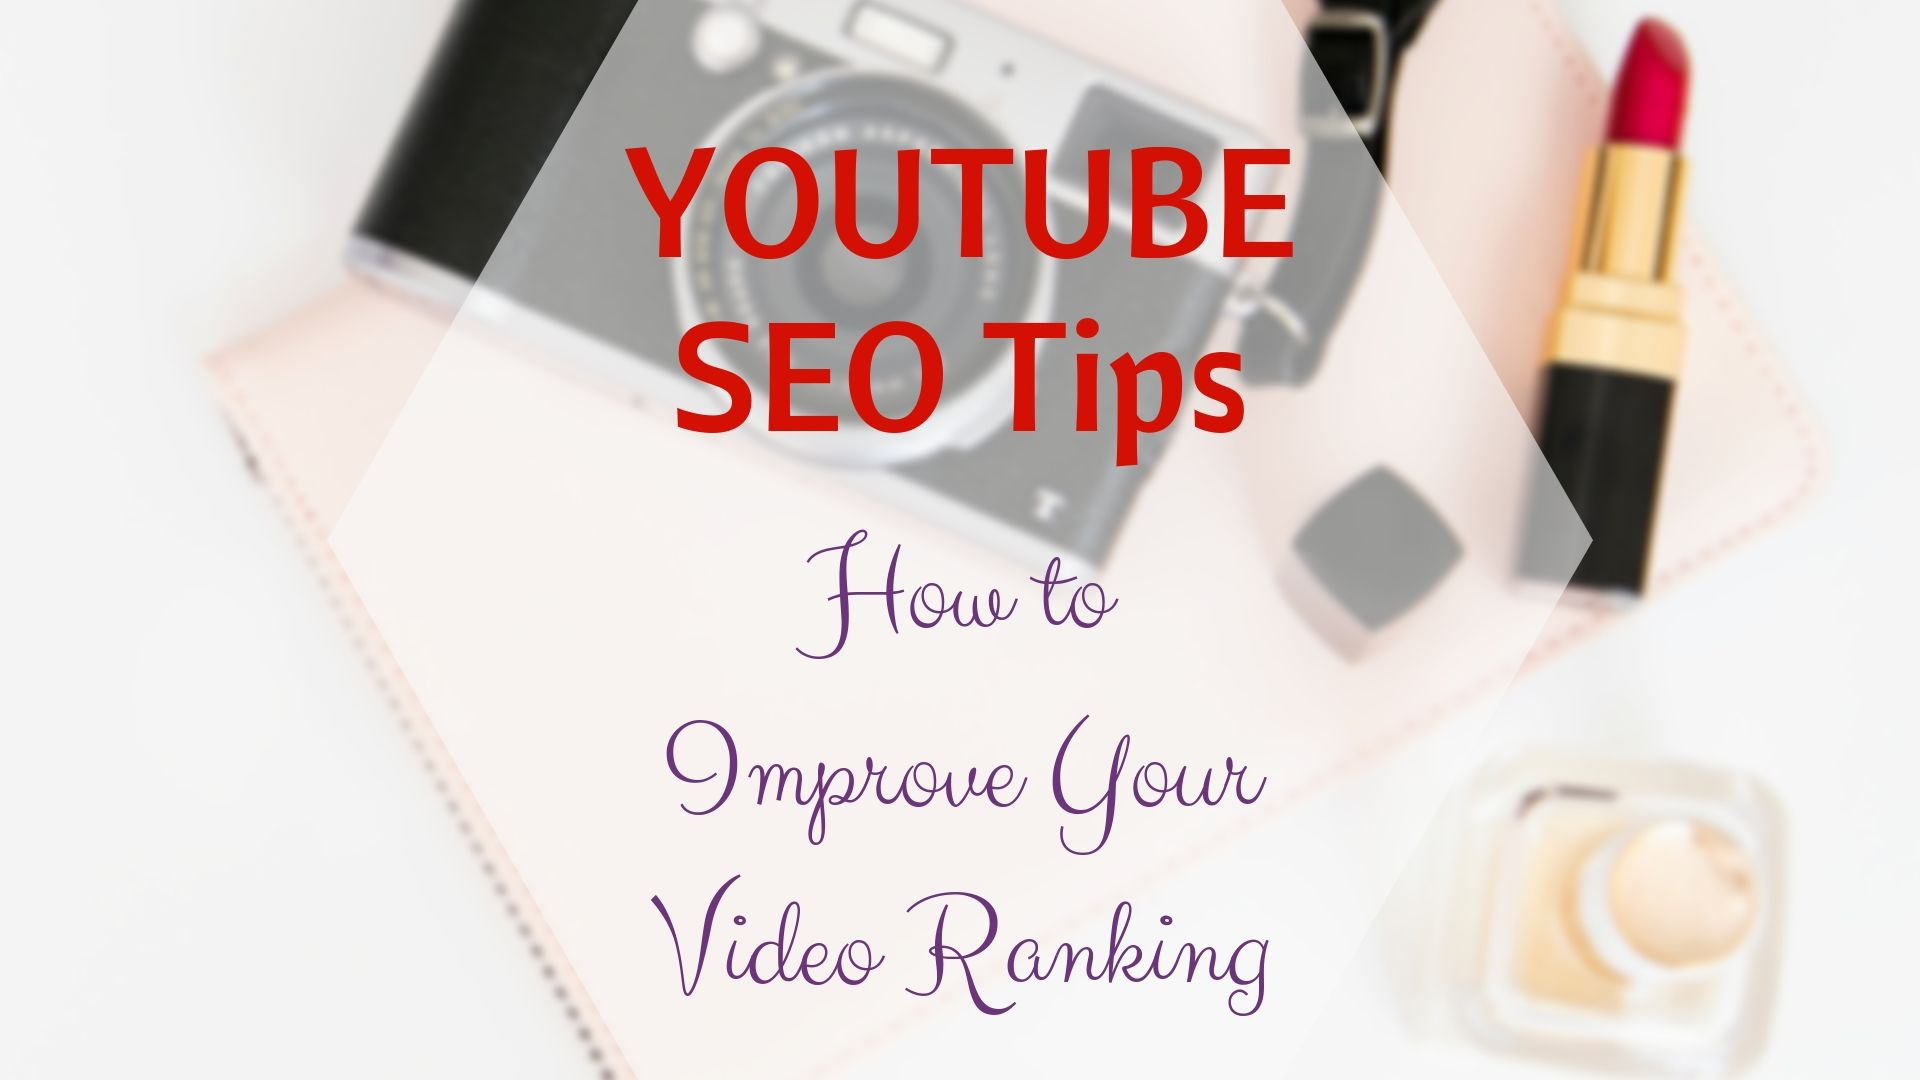 YouTube SEO Tips- How to Improve Your Video Ranking